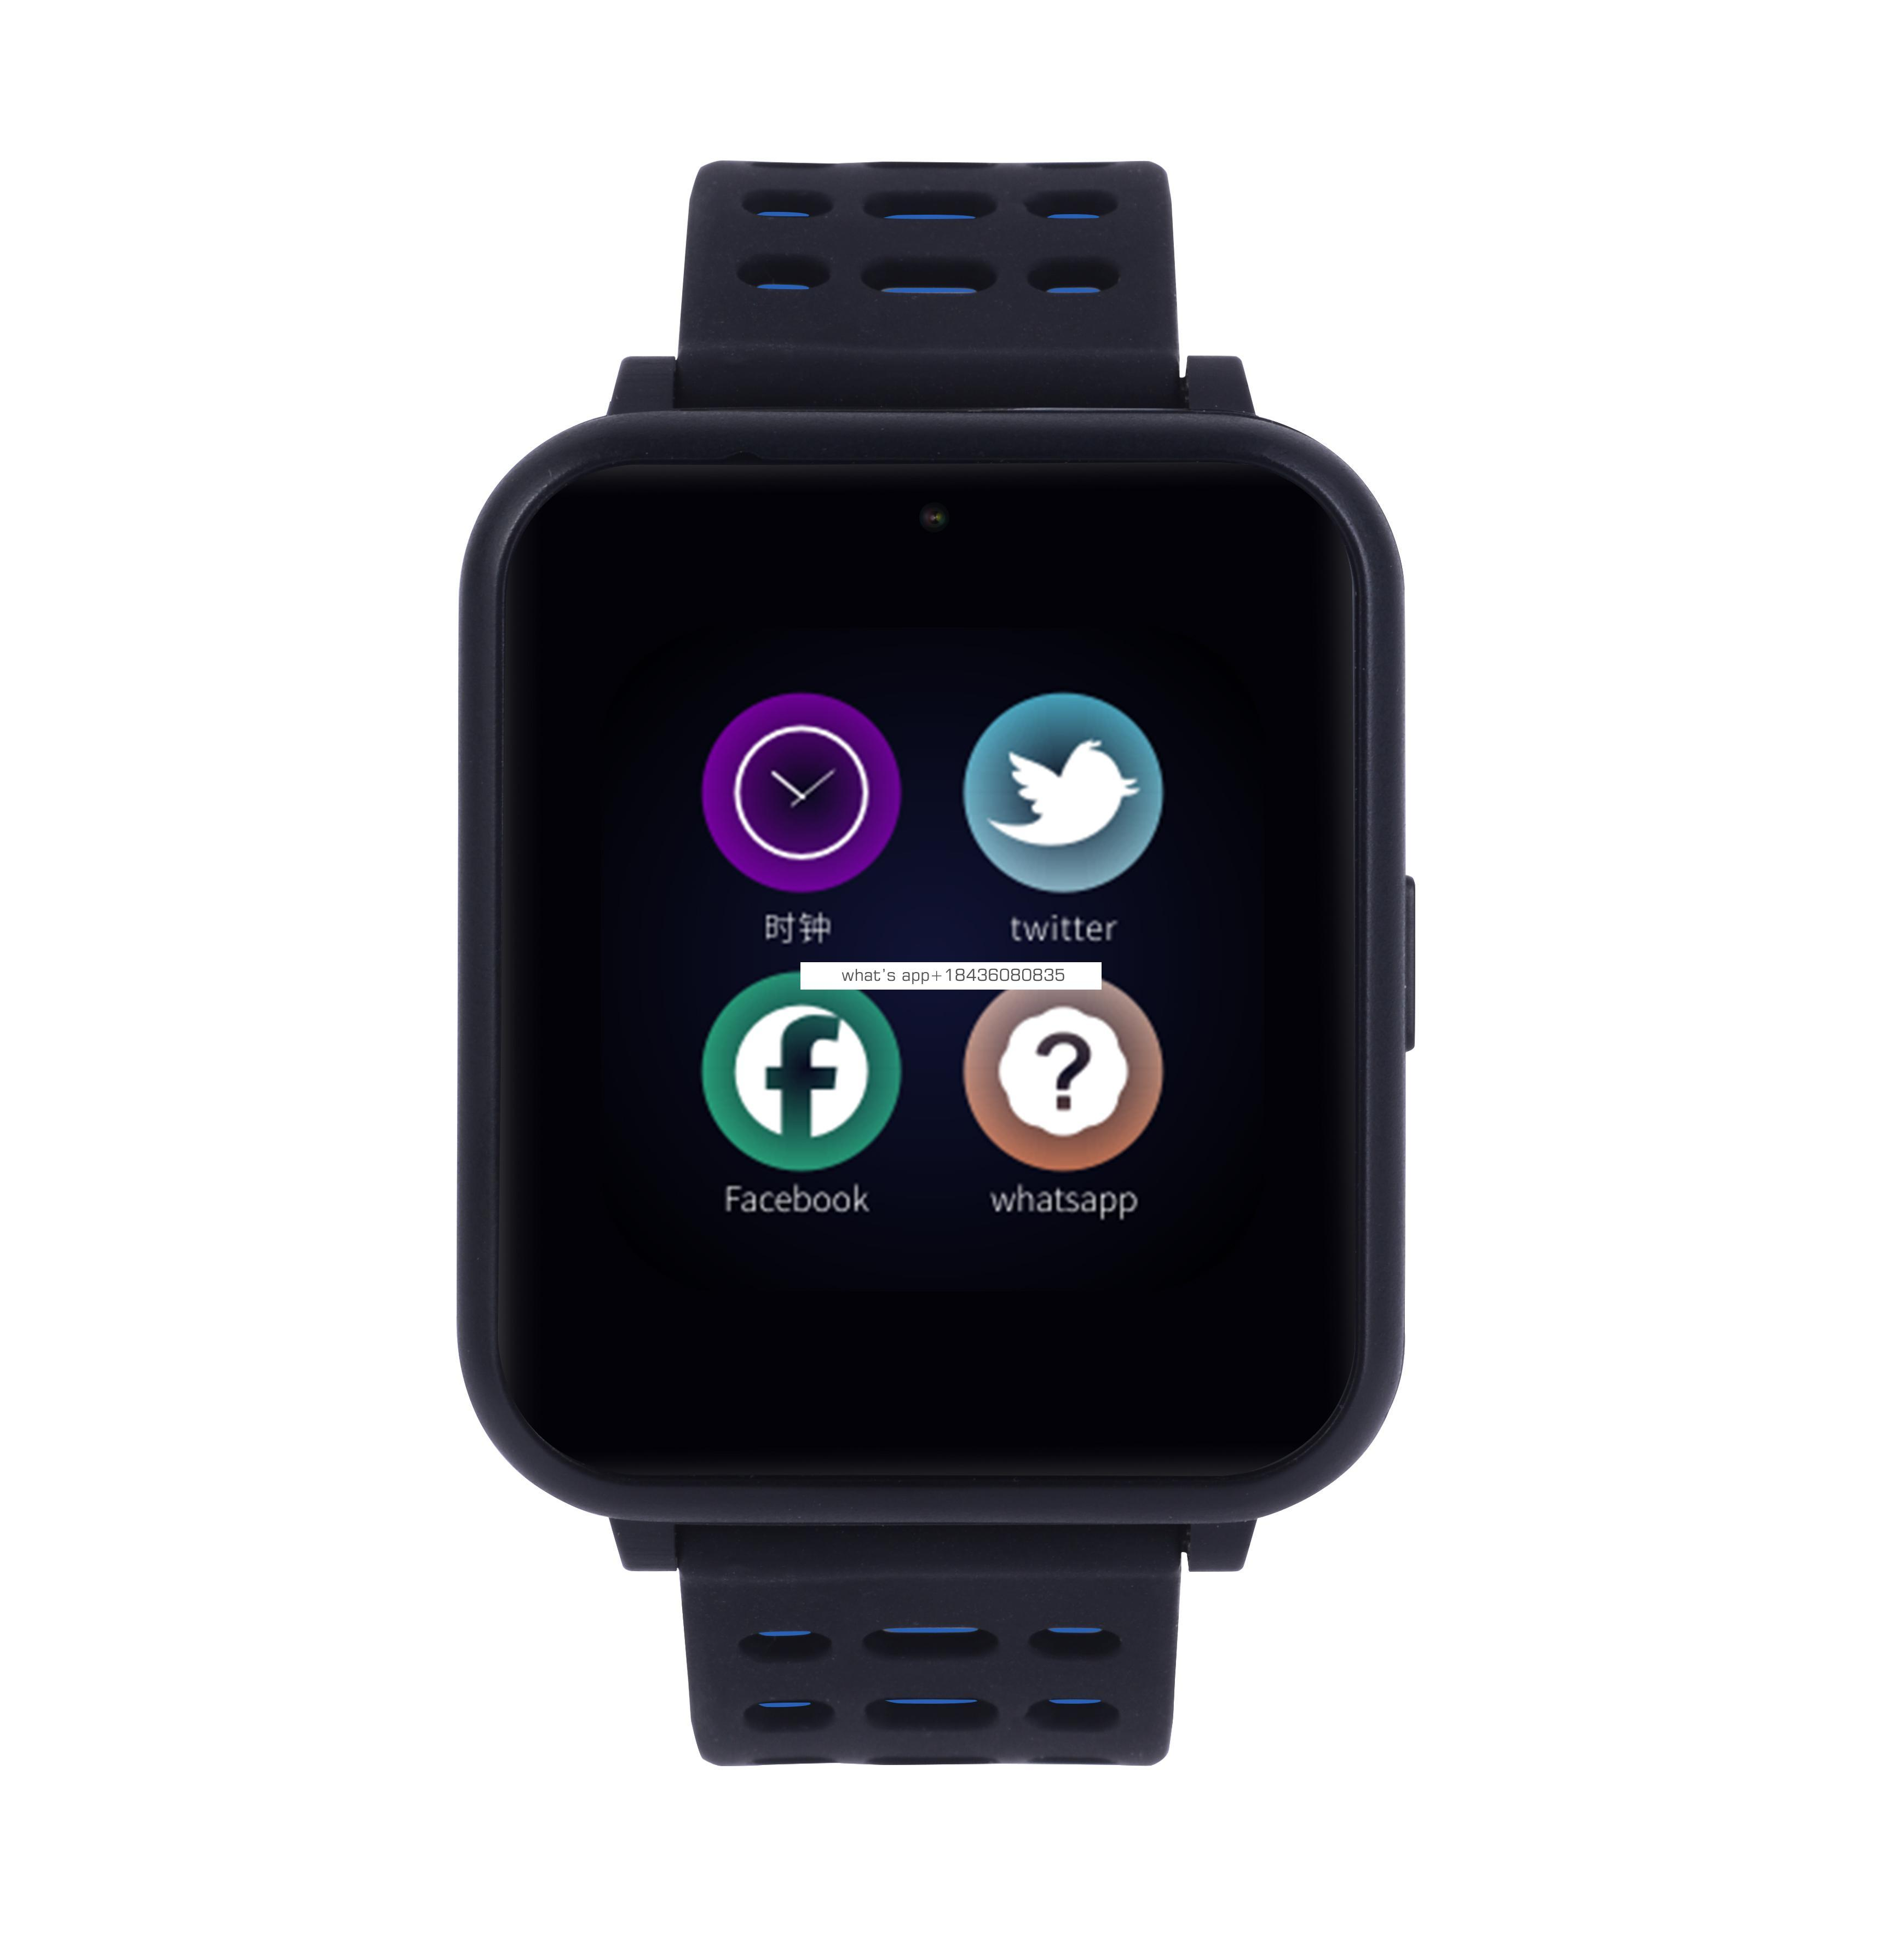 2019 New Smartwatch Z2 Smart watch with SIM card for Apple iPhone  Android smartphone